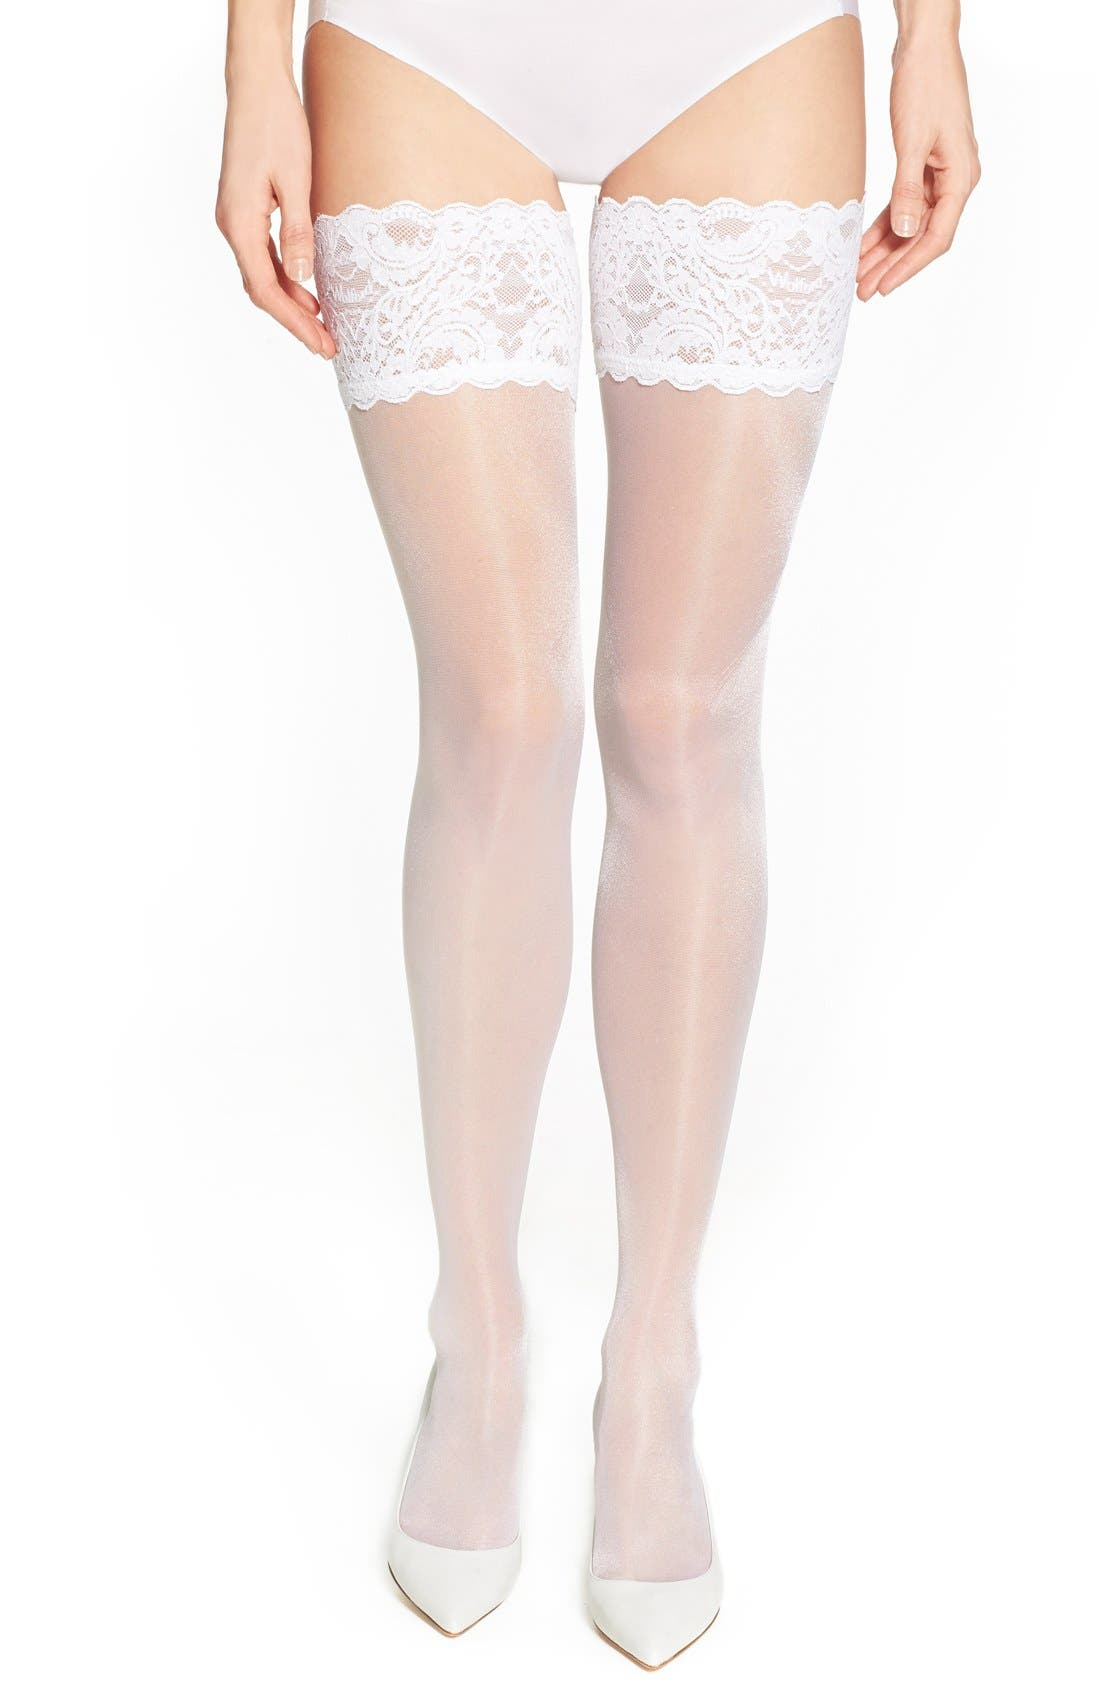 Satin Touch 20 Stay-Up Stockings,                         Main,                         color, White